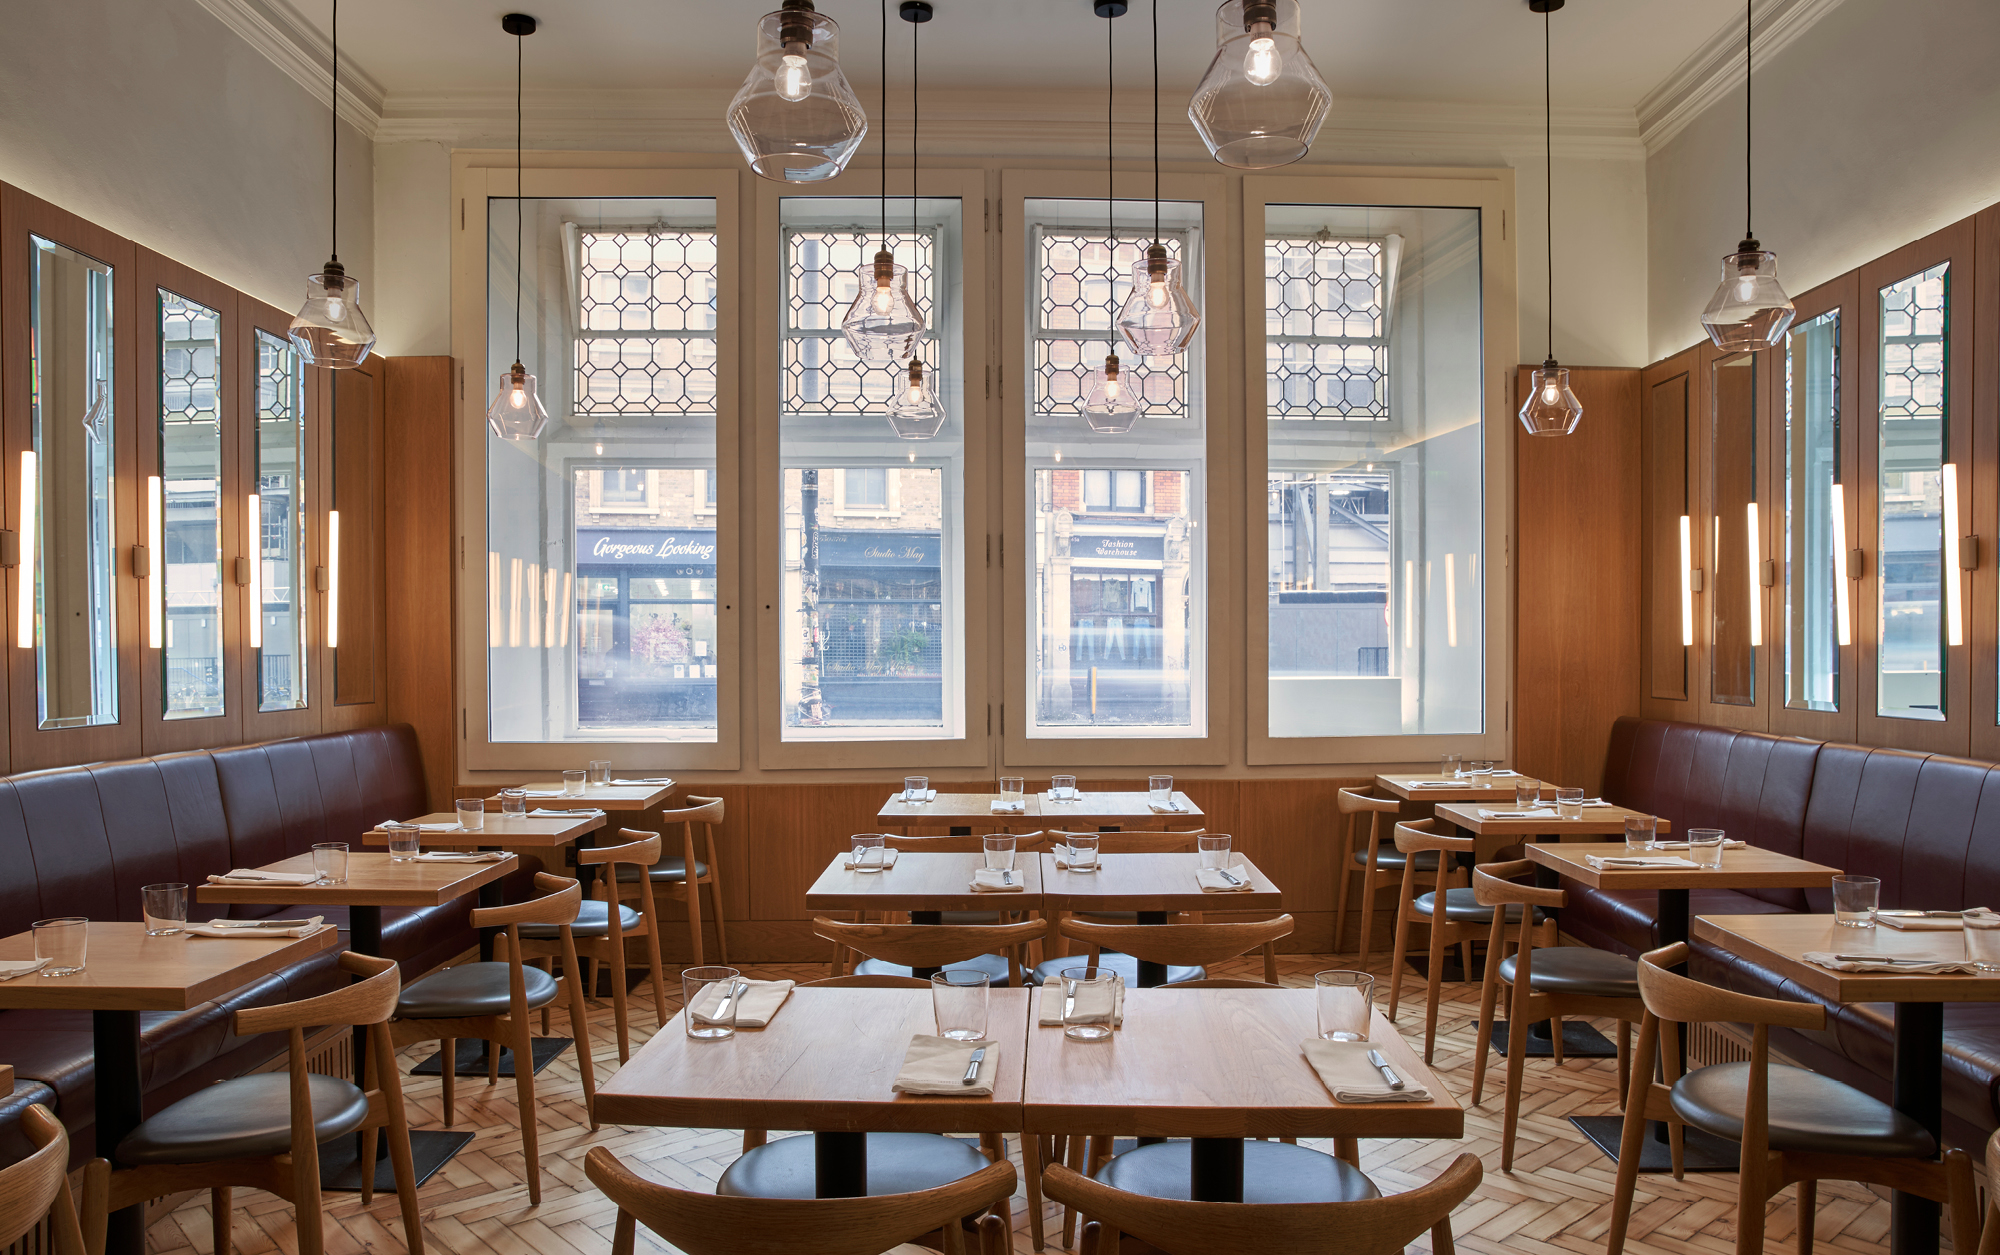 Townsend dinning room, café and wine bar at Whitechapel Gallery